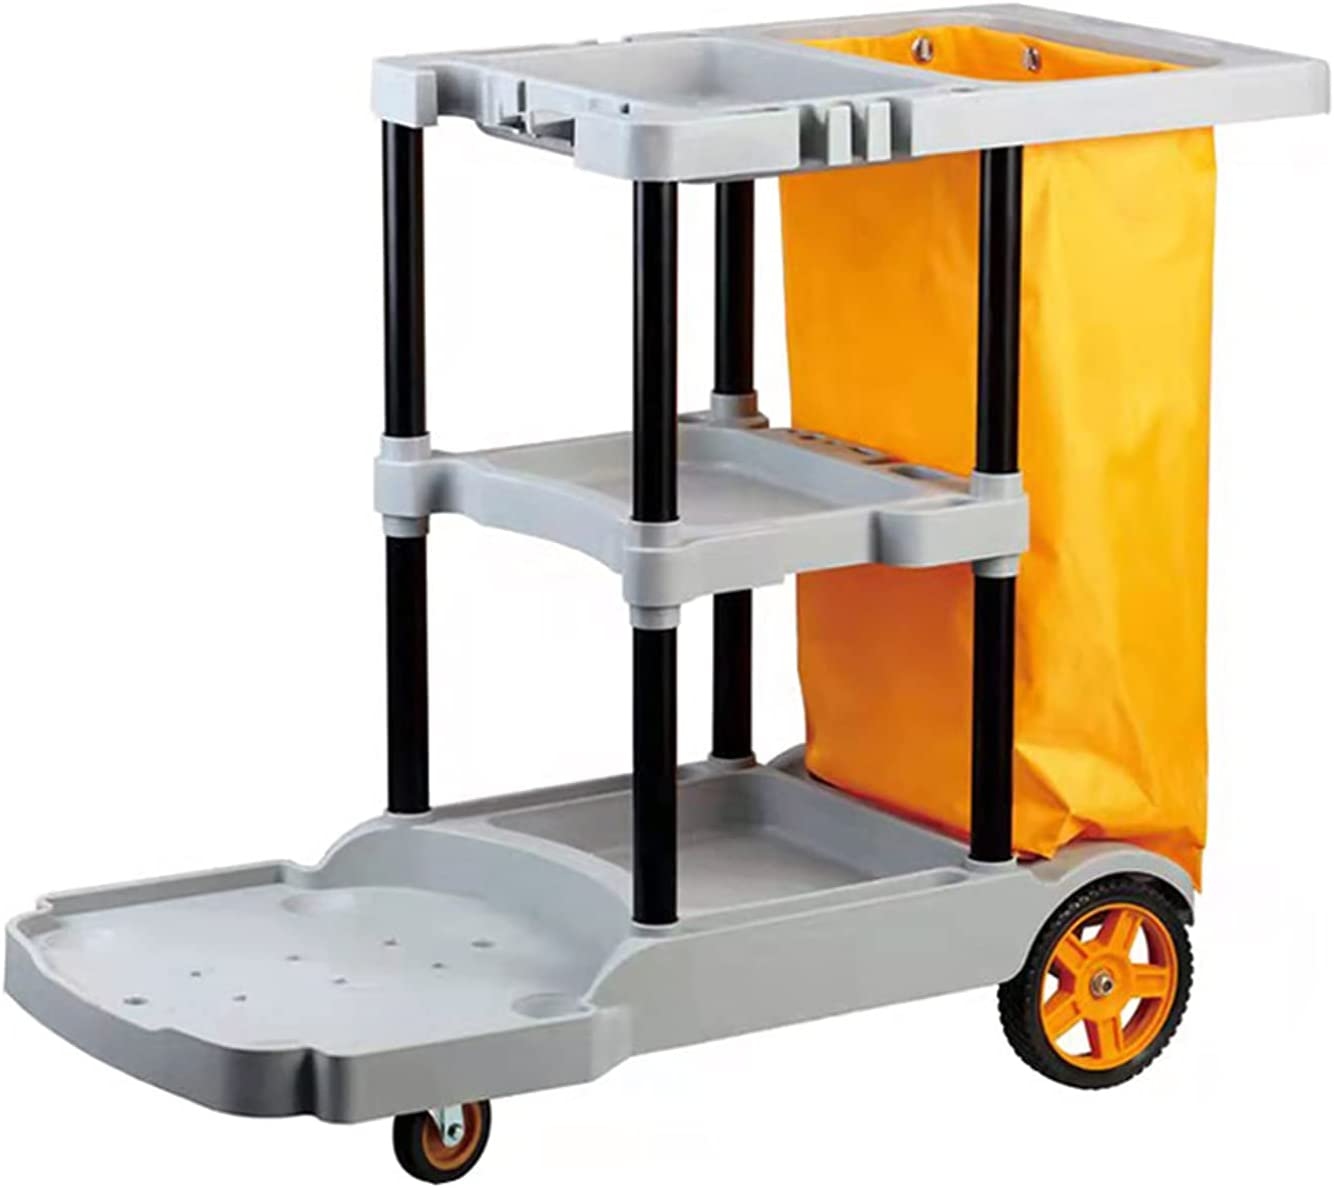 QAZXIWZ Cleaning Trolley with Waste Bag, for Hotel Restaurant Of